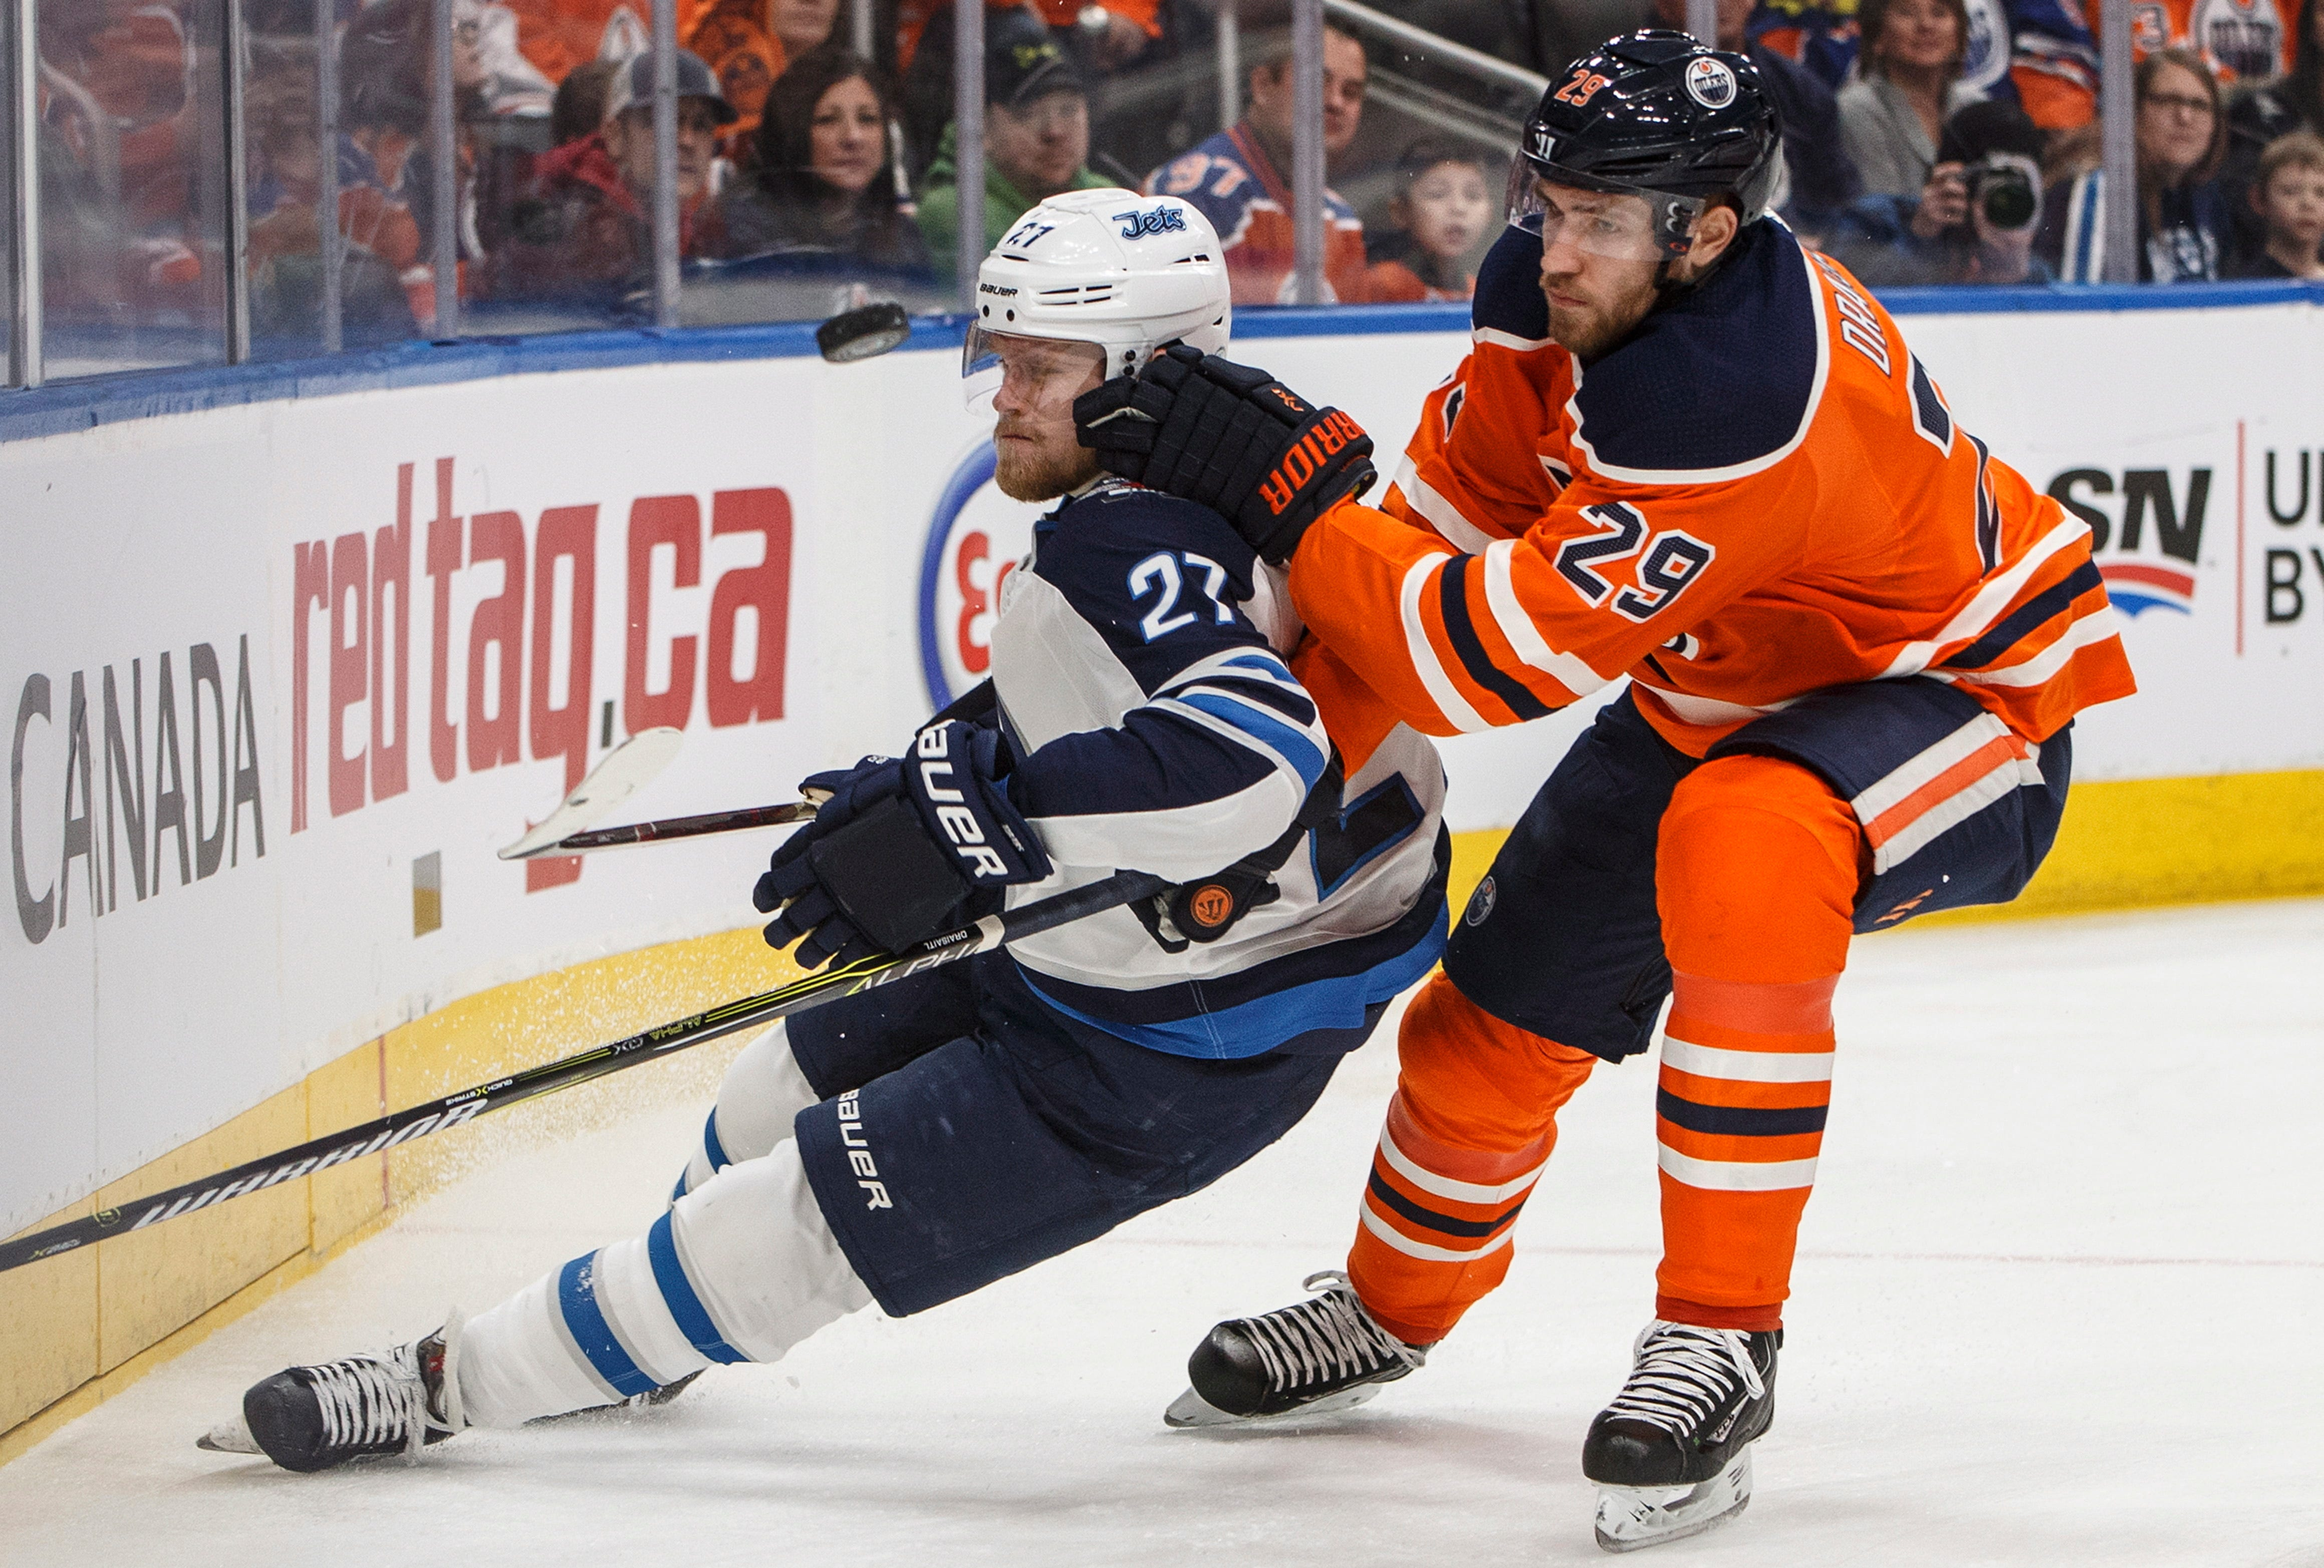 Connor Hellebuyck makes 35 saves, Jets beat Oilers 5-0